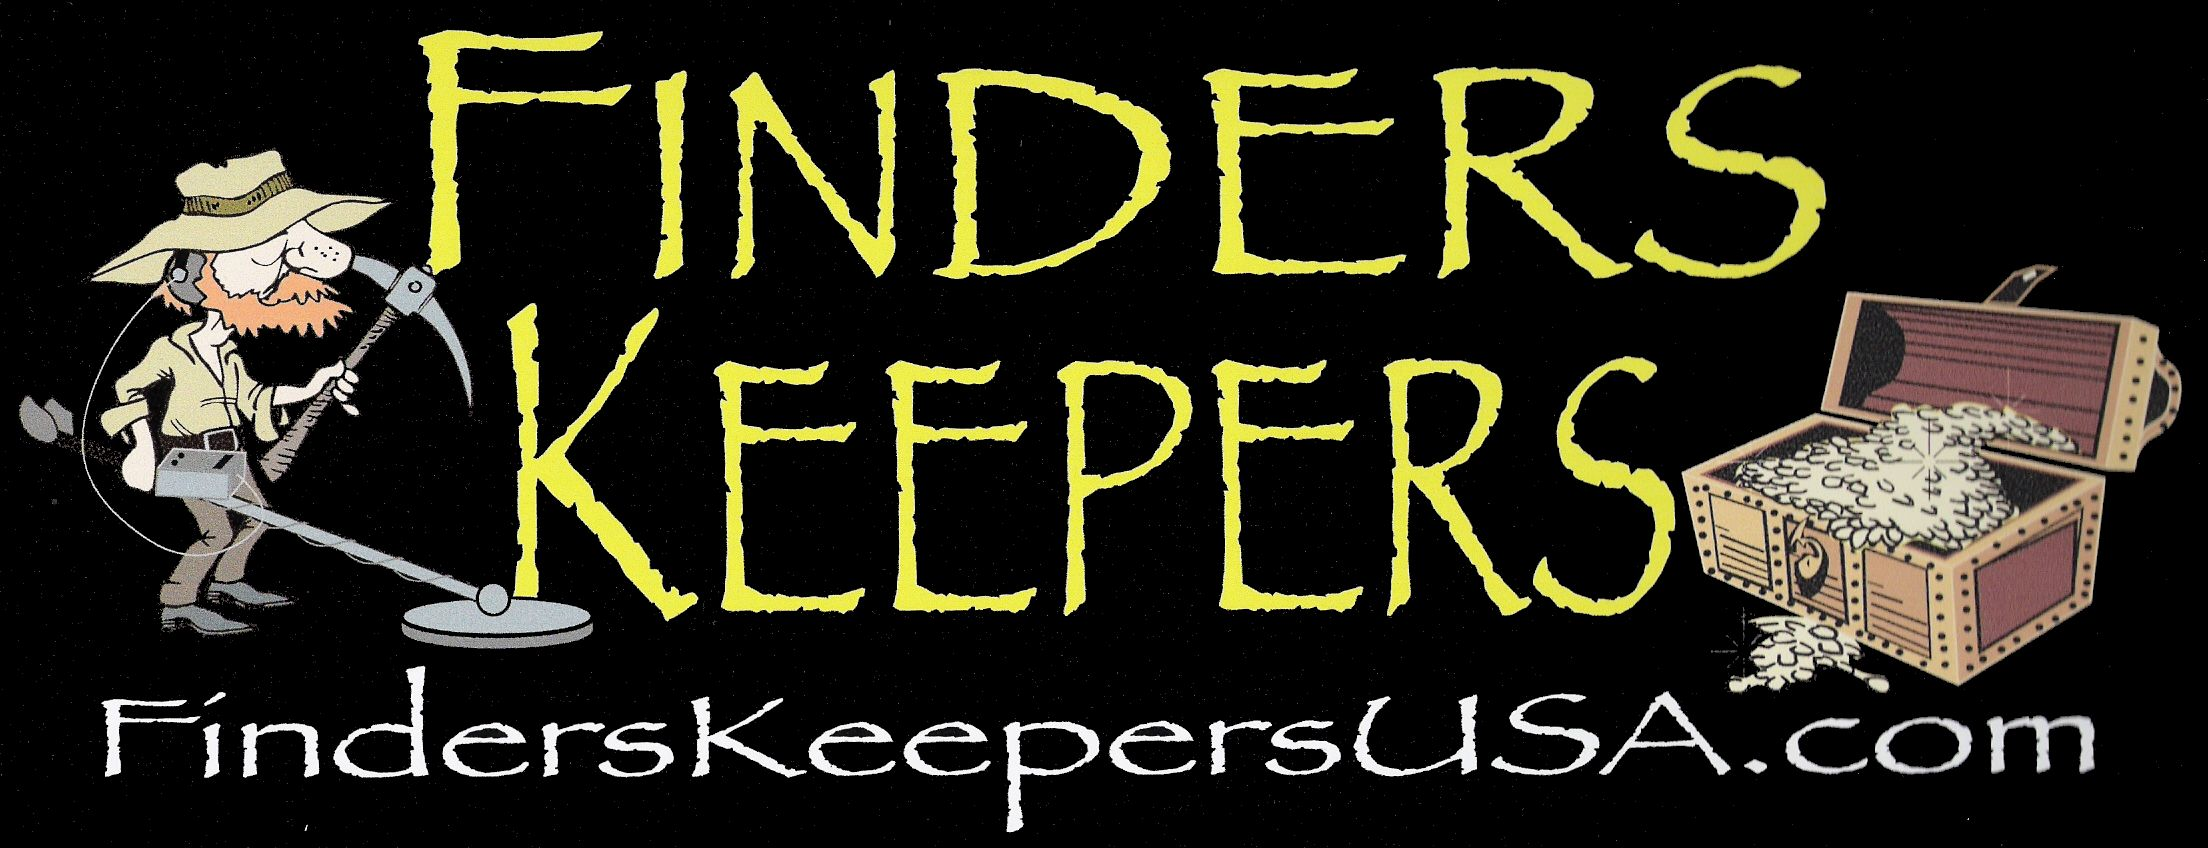 Finders Keepers USA logo